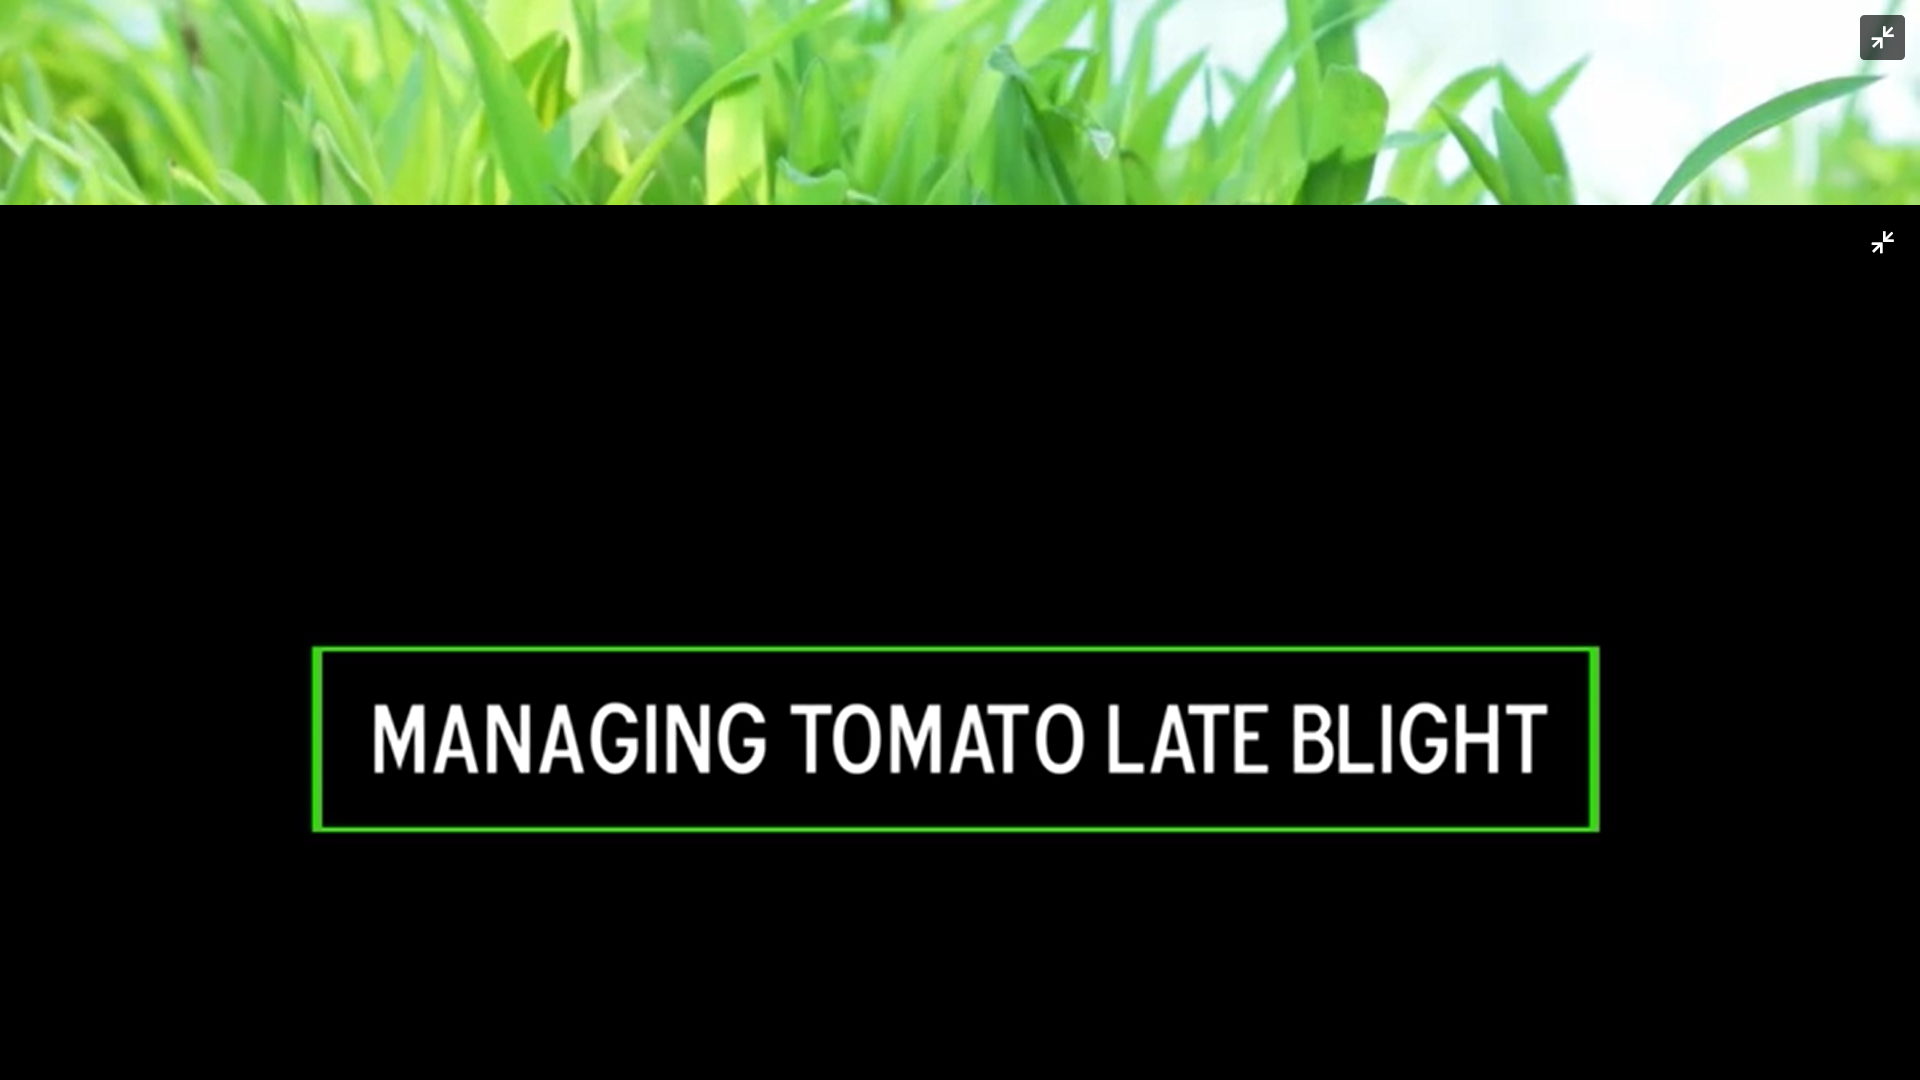 Managing Tomato Late Blight